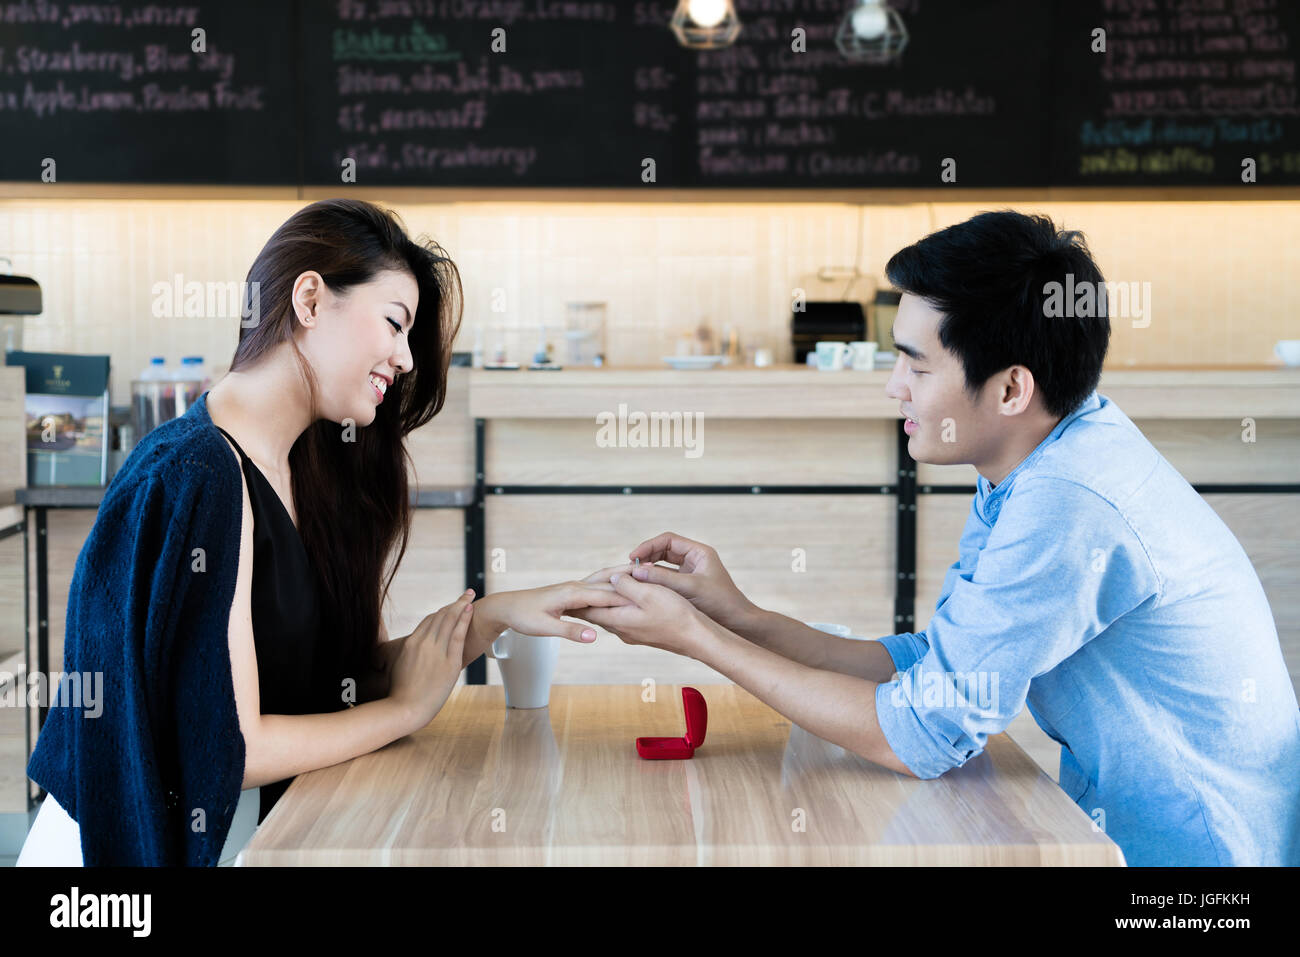 Asian handsome man putting wedding ring on and proposing to his beautiful woman in cafe. Love, anniversary, surprise, - Stock Image